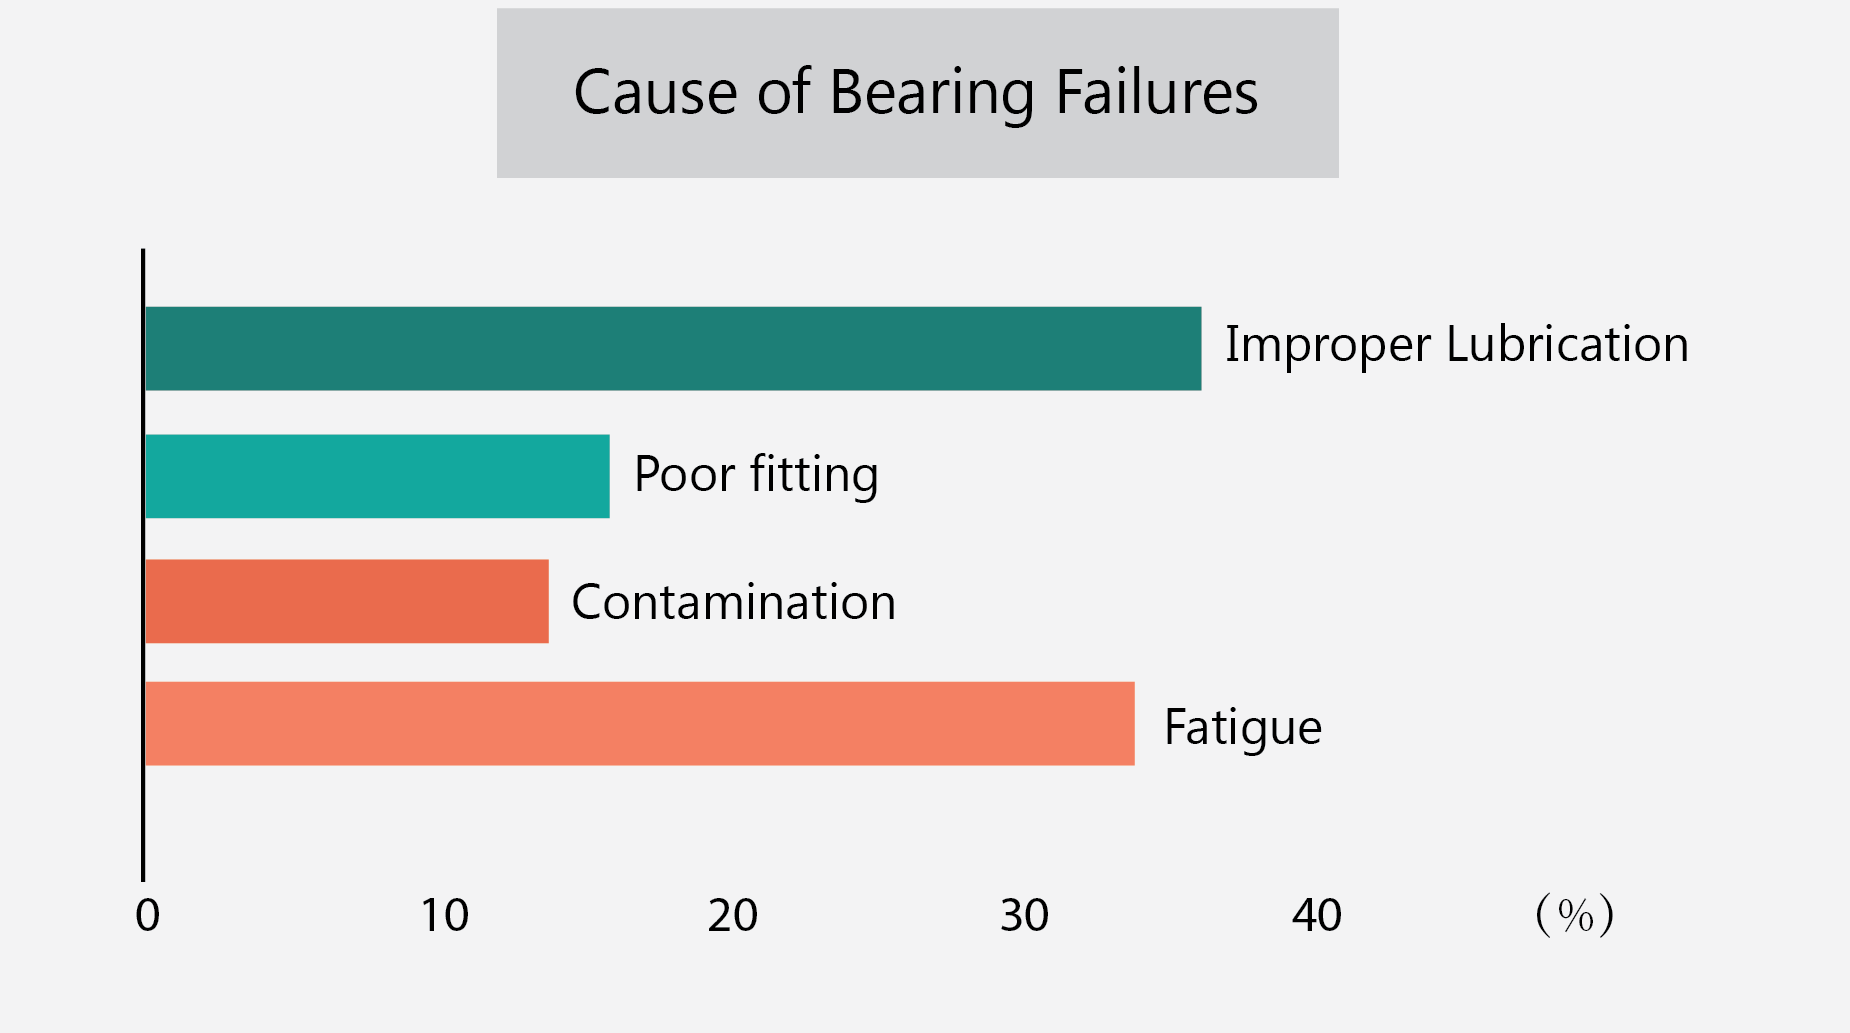 cause of bearing failure new.png